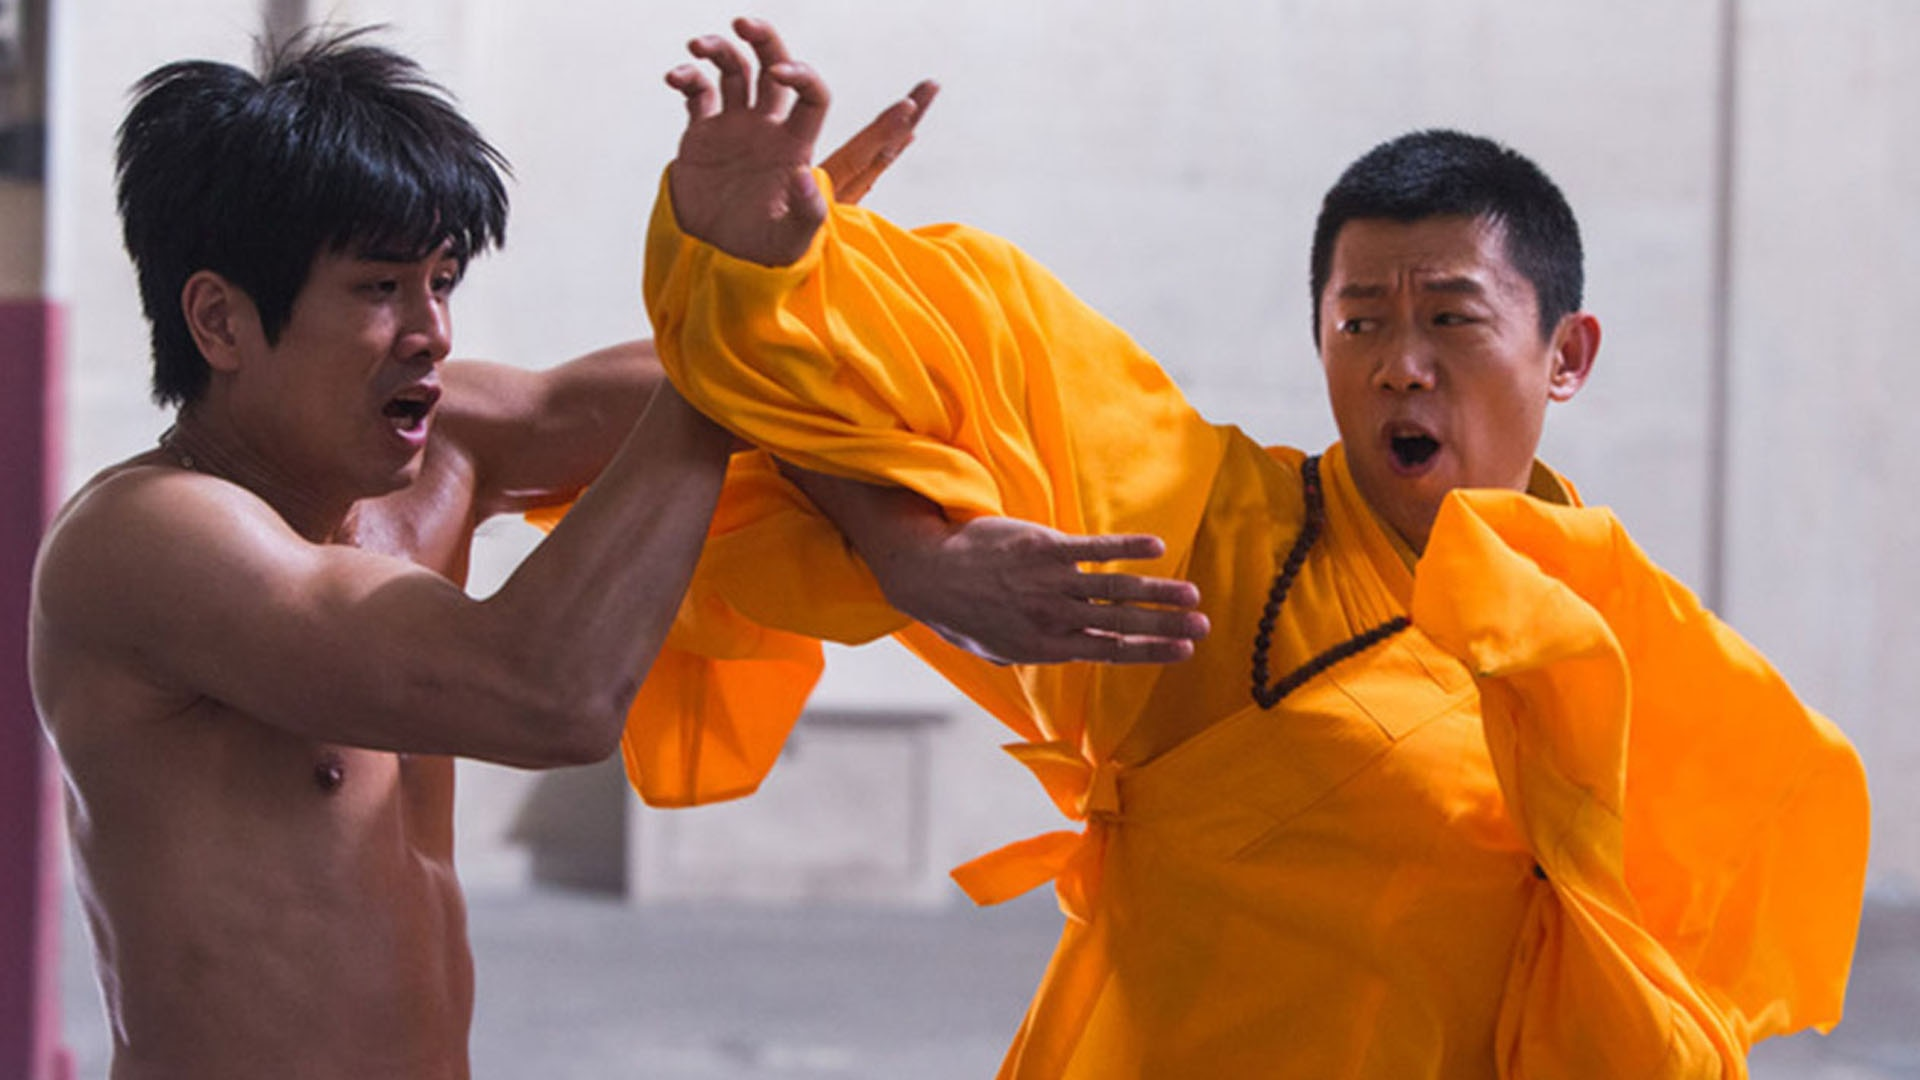 On TV: Birth of the Dragon